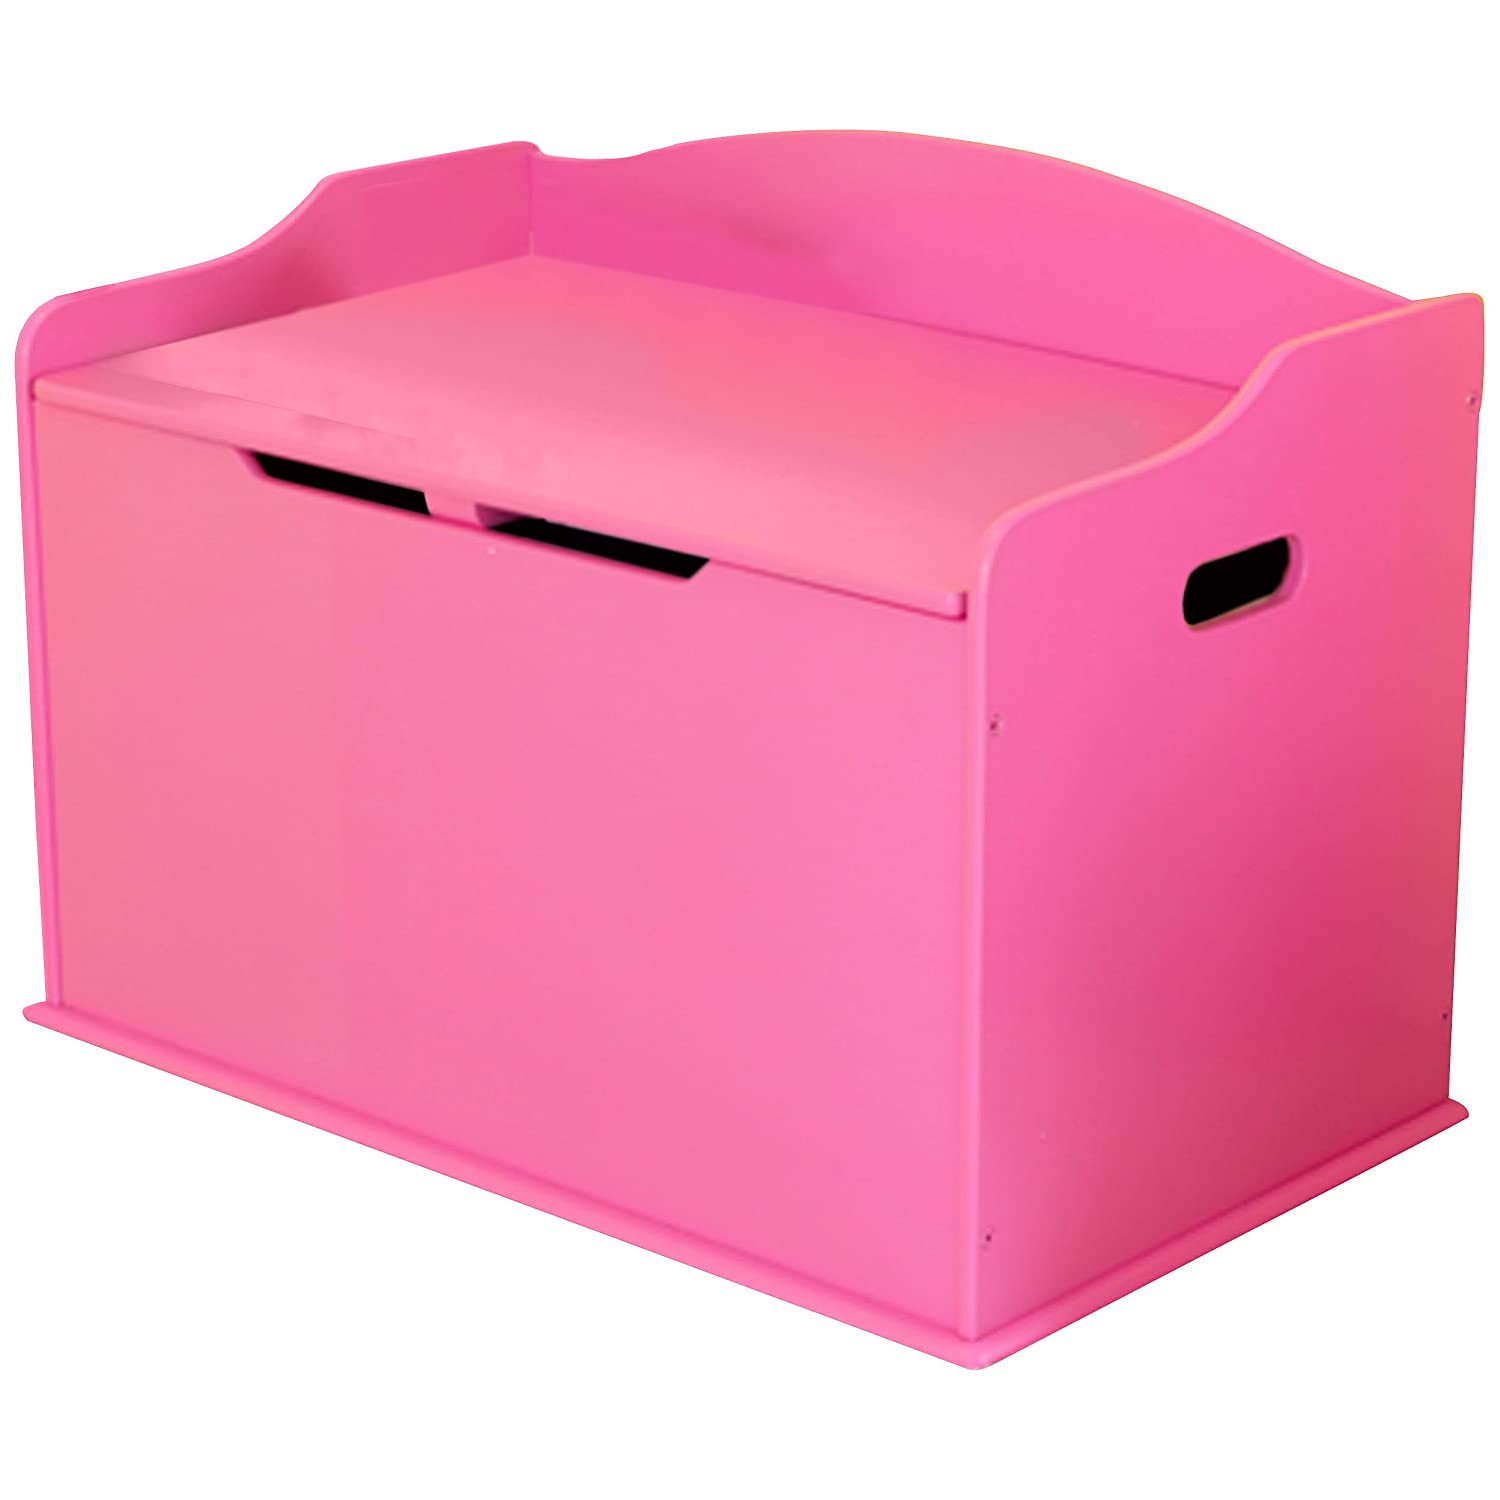 Toy Boxes For Girls : Best toys for kids toy boxes girls pretty in